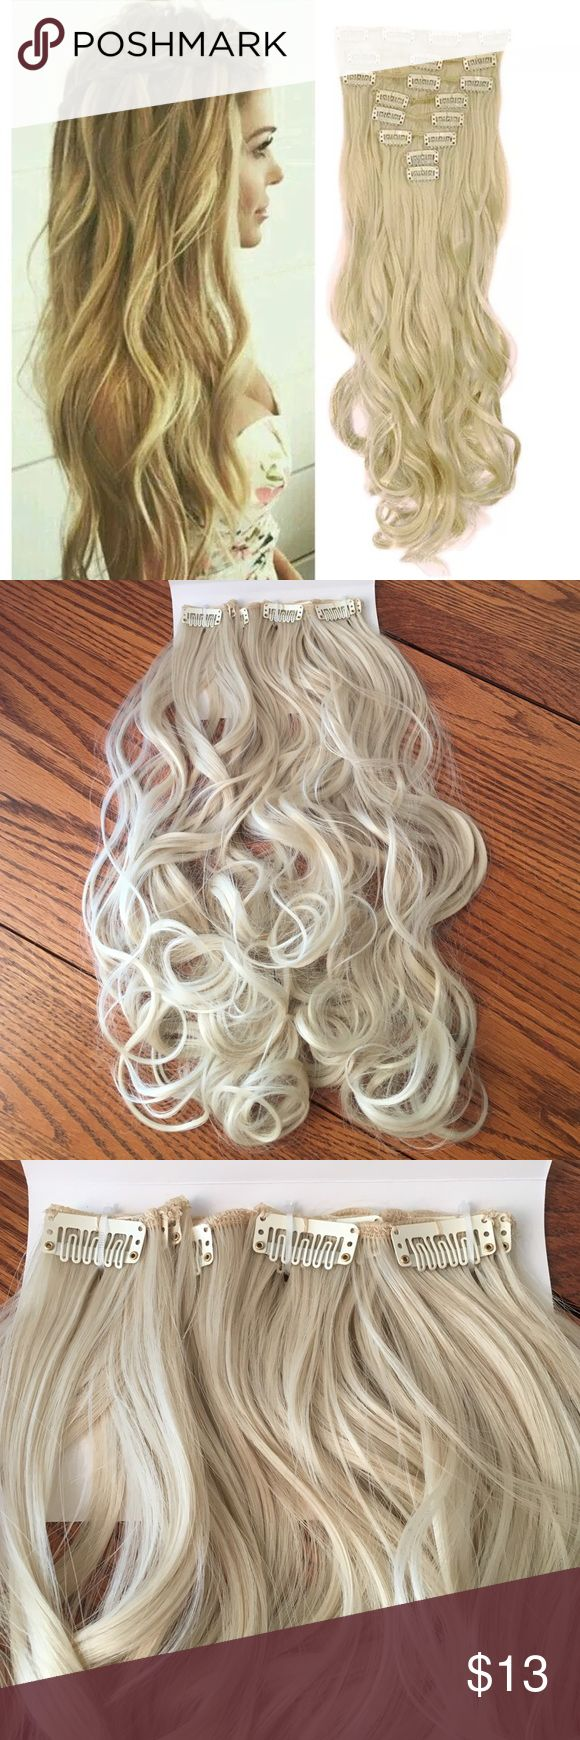 213 best my posh closet images on pinterest stains hair 8piece 17 l curly synthetic extensions blonde pmusecretfo Image collections